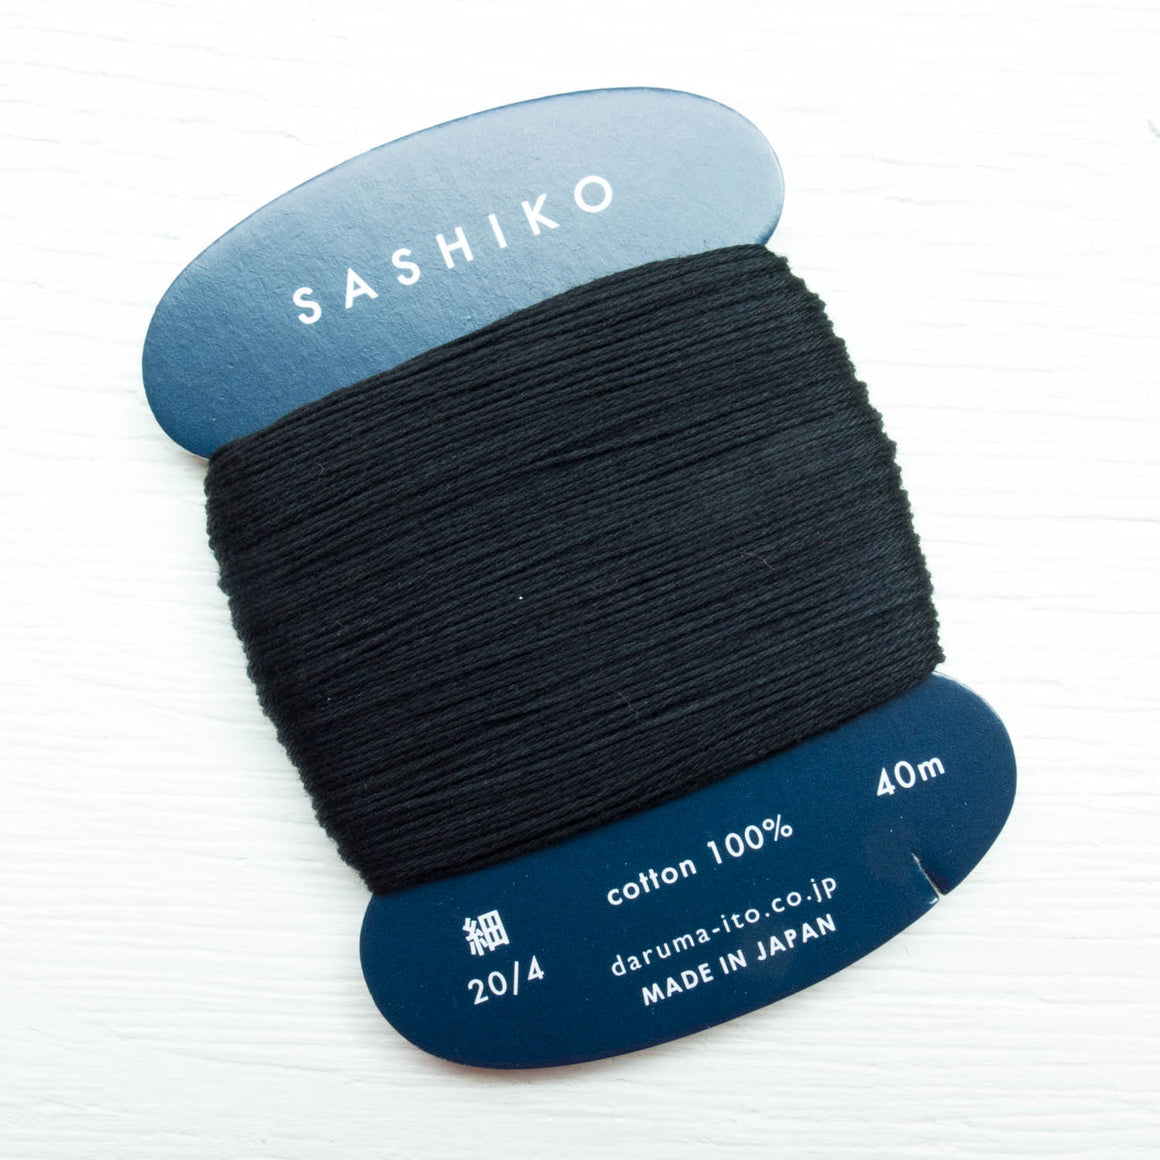 Daruma Carded Sashiko Thread - Black (no. 219) Sashiko - Snuggly Monkey